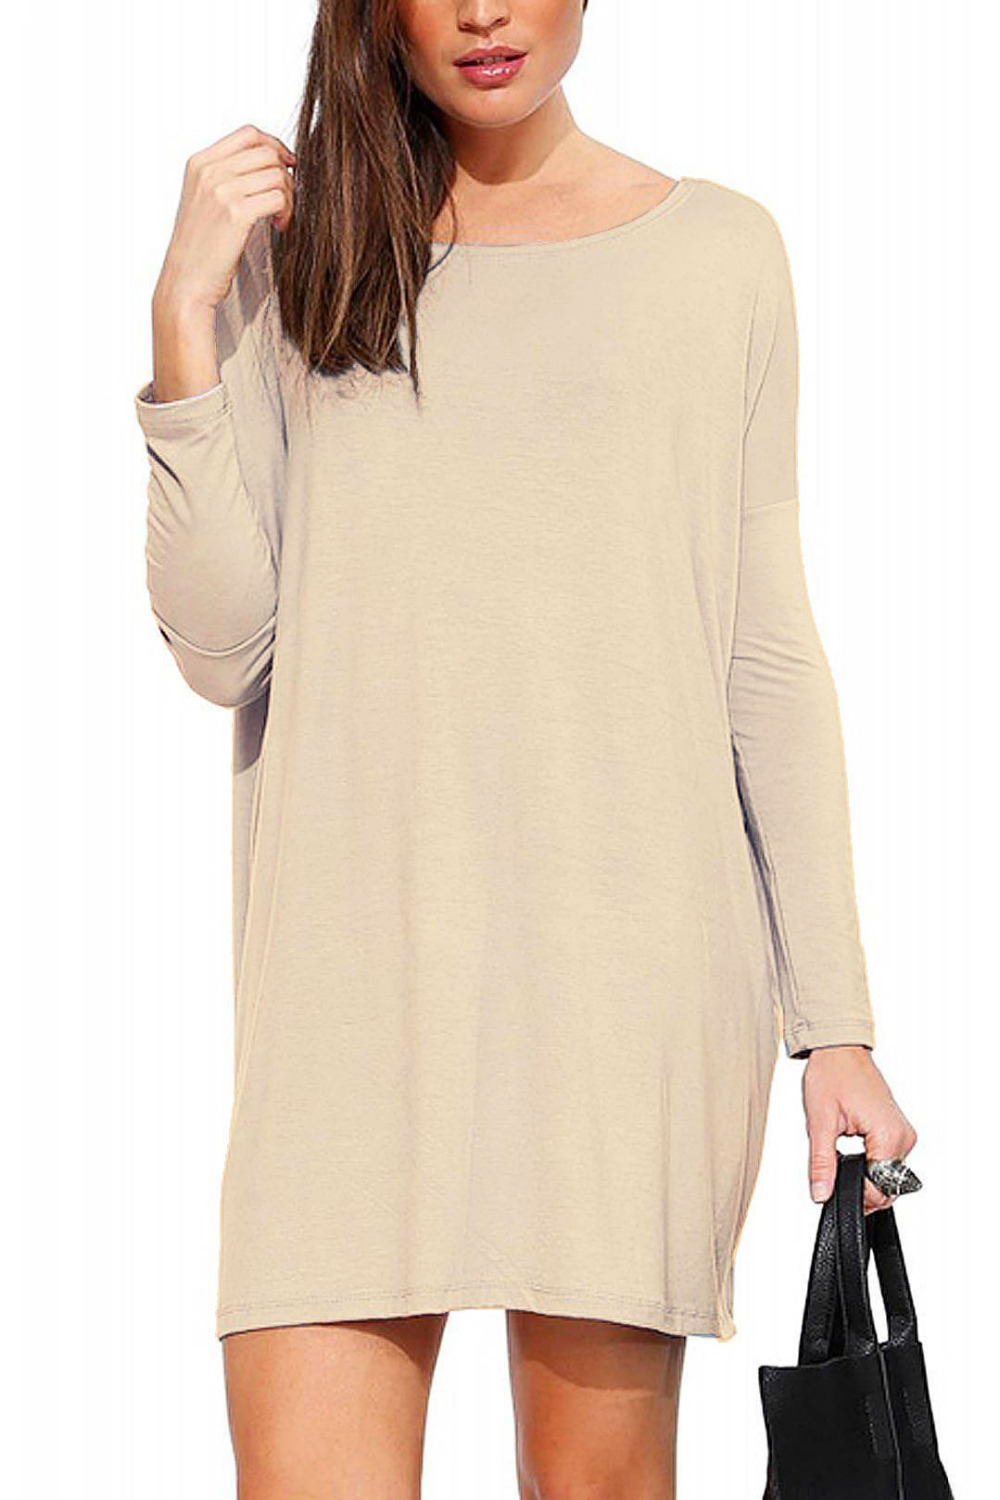 Casual Dresses Women Long Sleeve Shift Dress(China (Mainland))